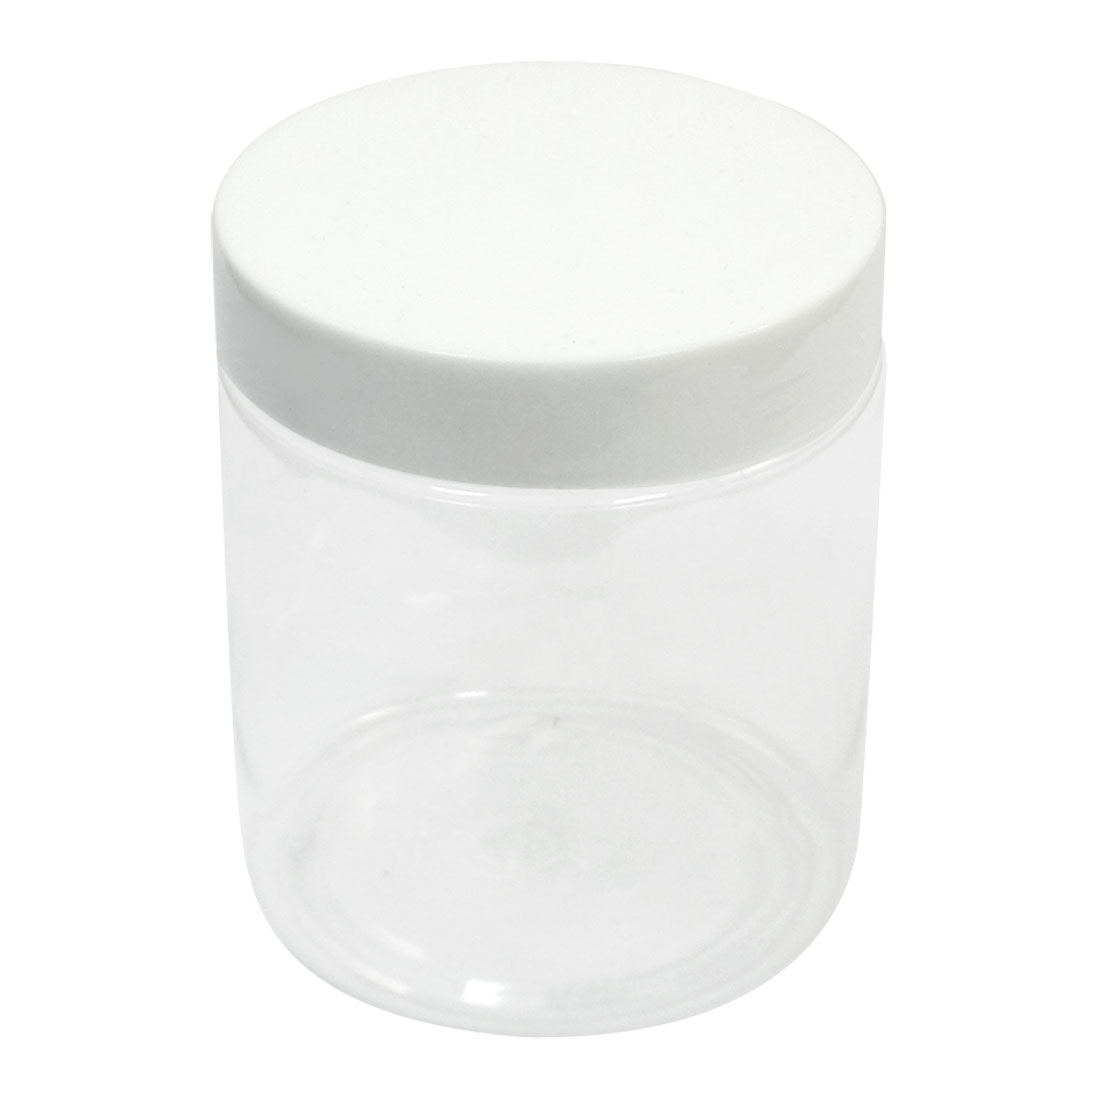 250ml Capacity 60mm Dia Mouth 8.5cm x 7cm White Clear Plastic Cylinder Body Plastic Widemouth Chemical Reagent Storage Jar Bottle for Laboratory